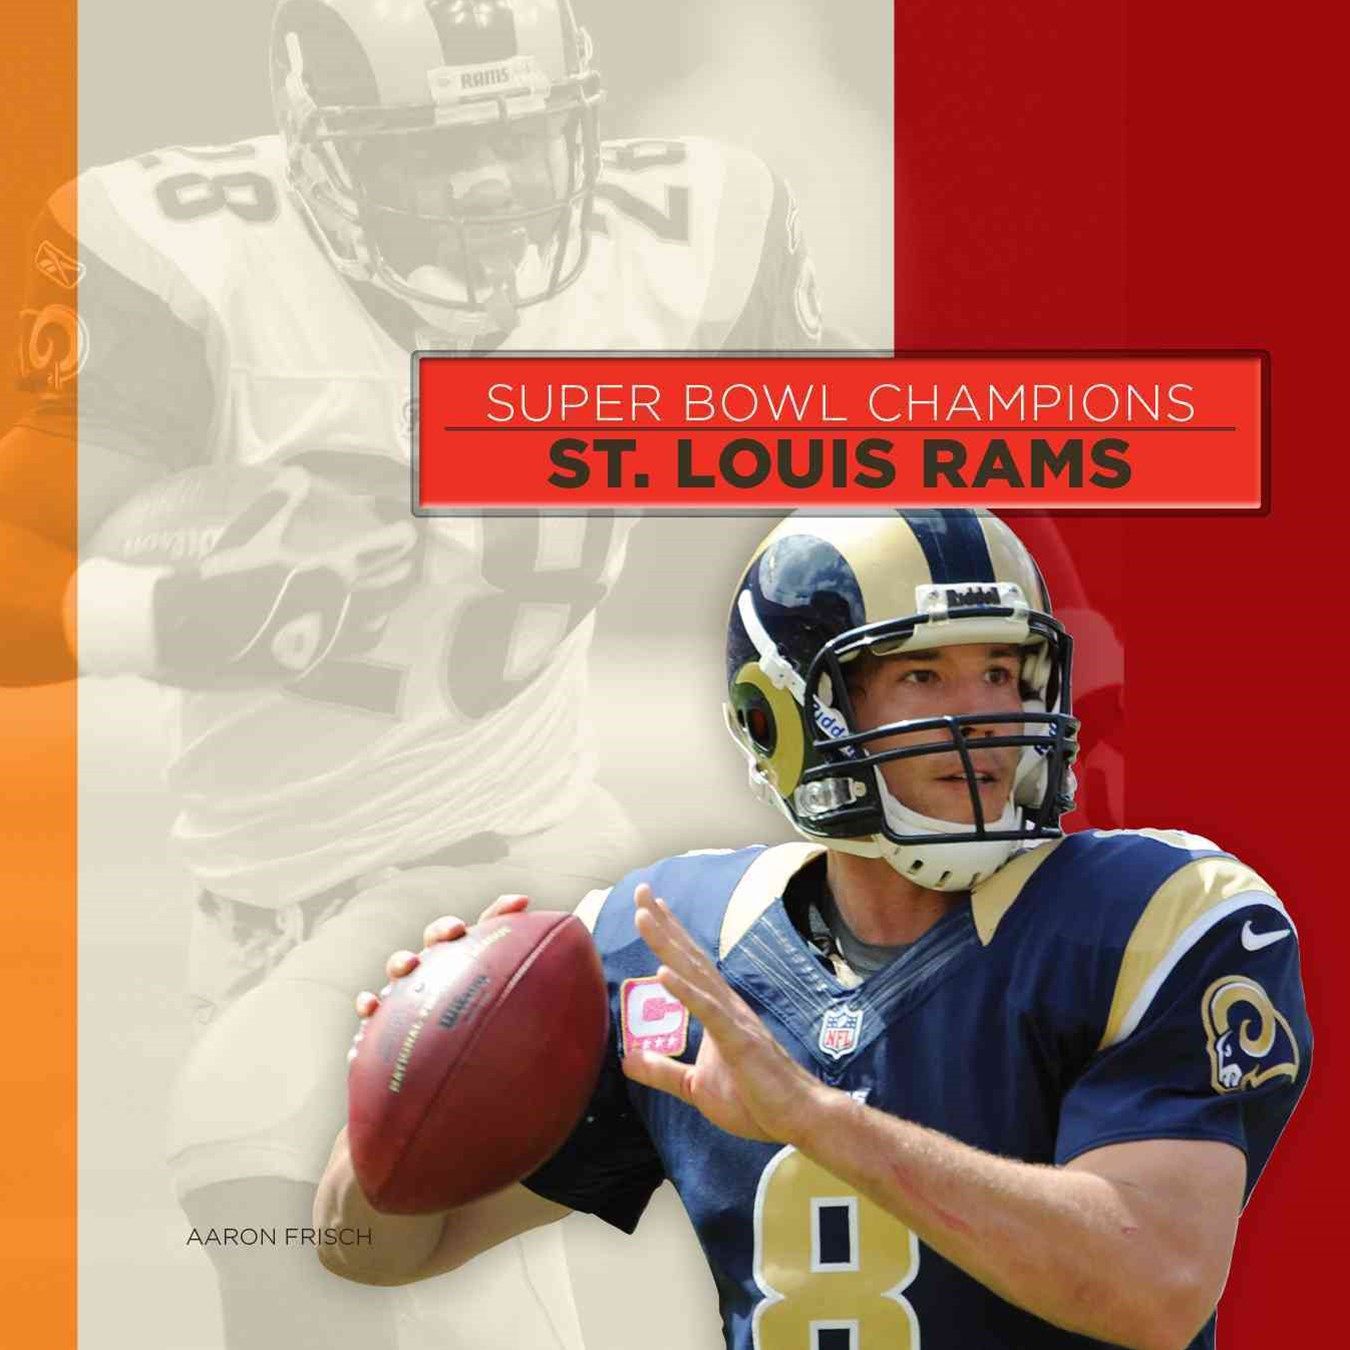 Super Bowl Champions: St. Louis Rams